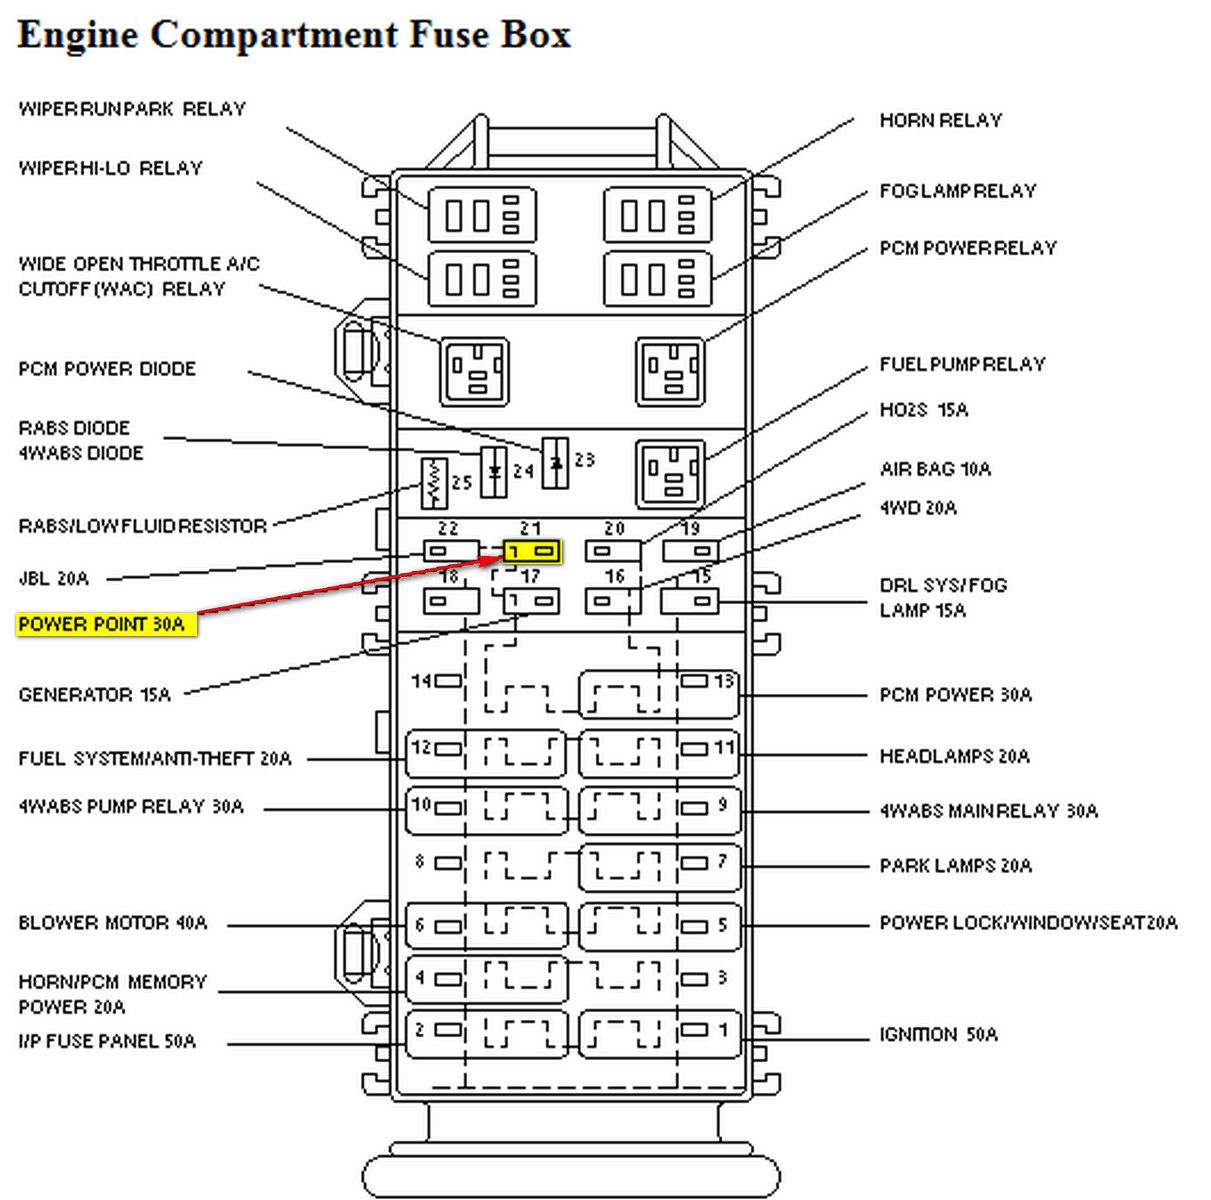 1997 ford ranger fuse box diagram truck part diagrams ford ranger rh pinterest com ford ranger [ 1211 x 1200 Pixel ]